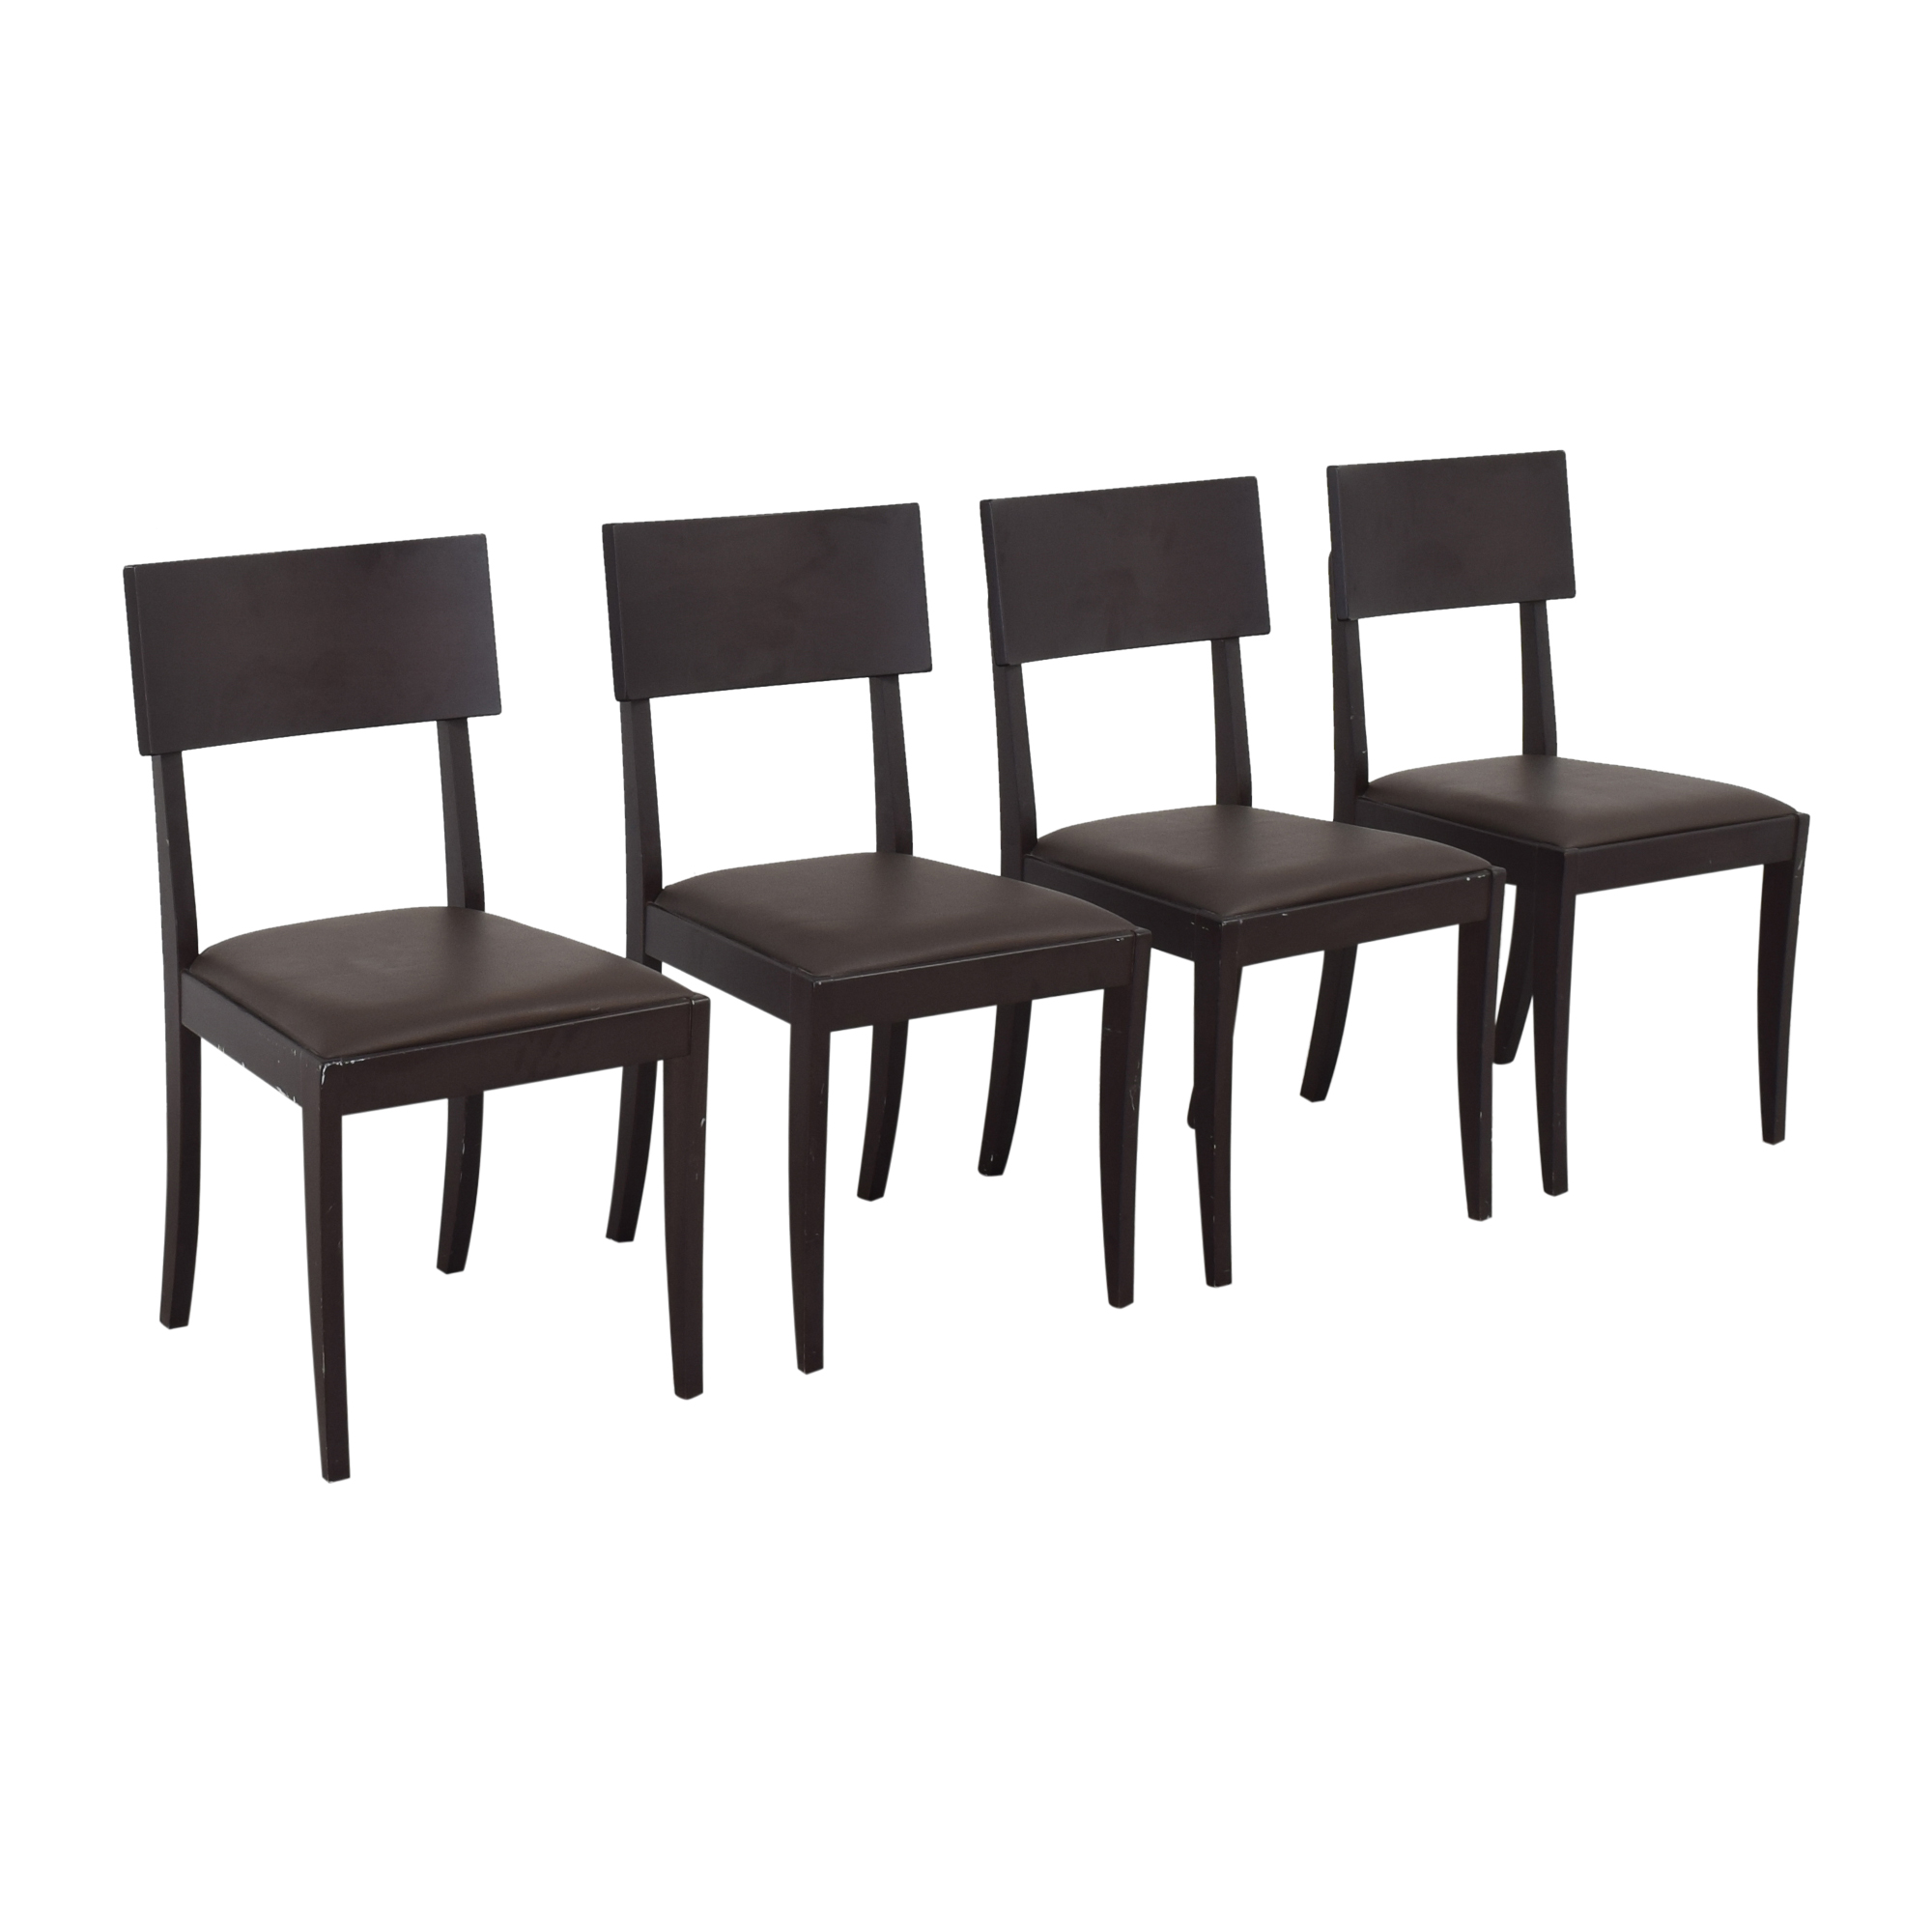 Crate & Barrel Dining Chairs Crate & Barrel